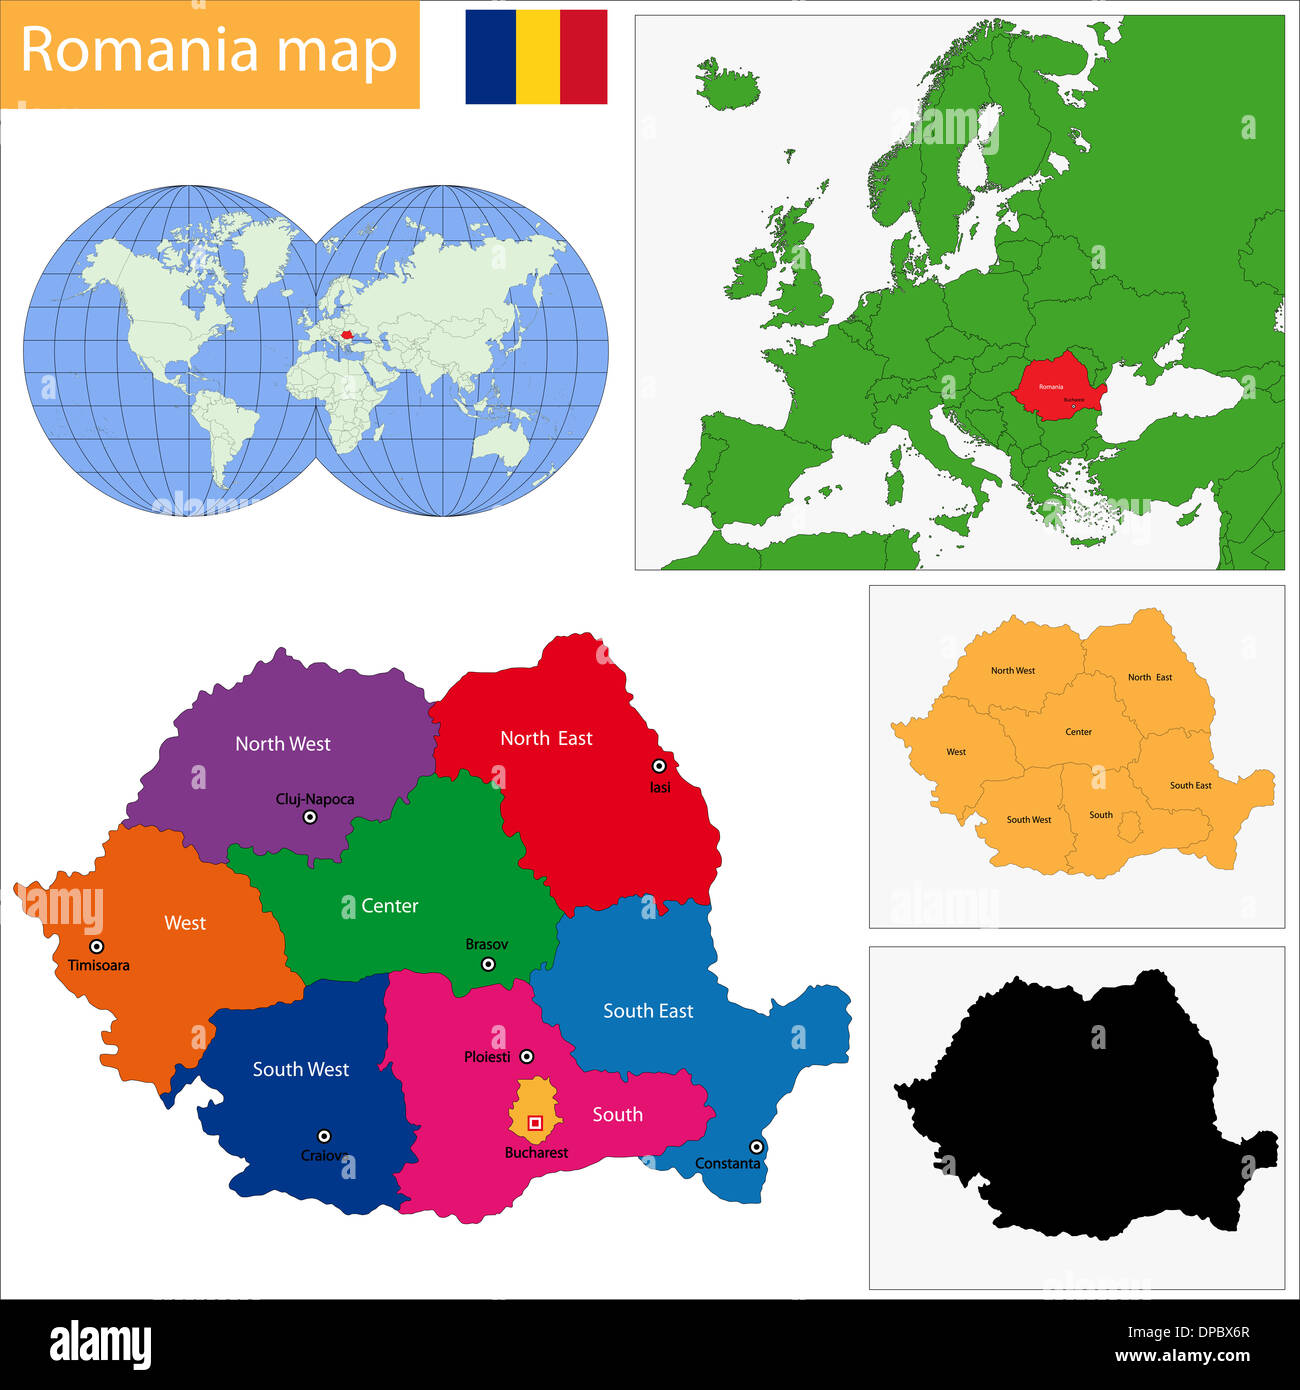 Administrative division of the Romania - Stock Image